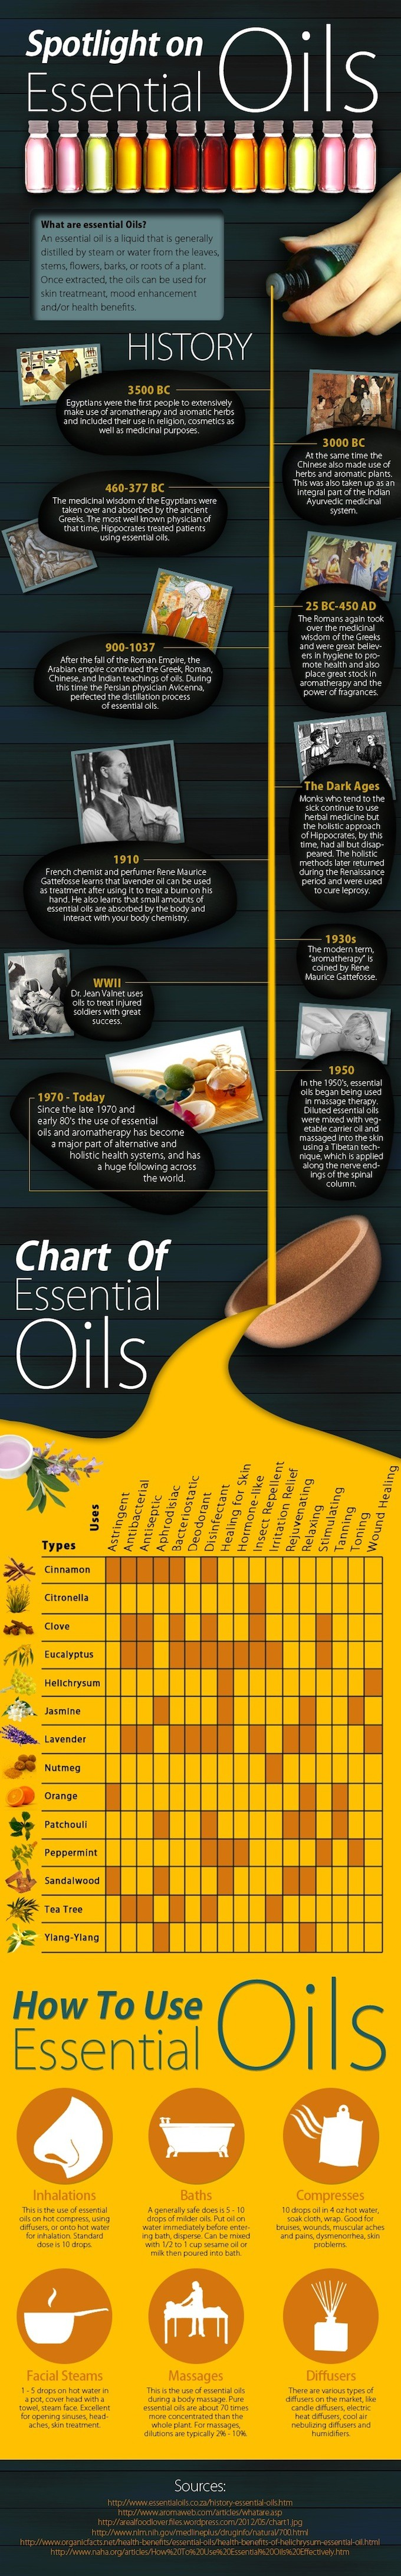 From: http://yoganonymous.com/everything-you-need-to-know-about-essential-oils-infographic/